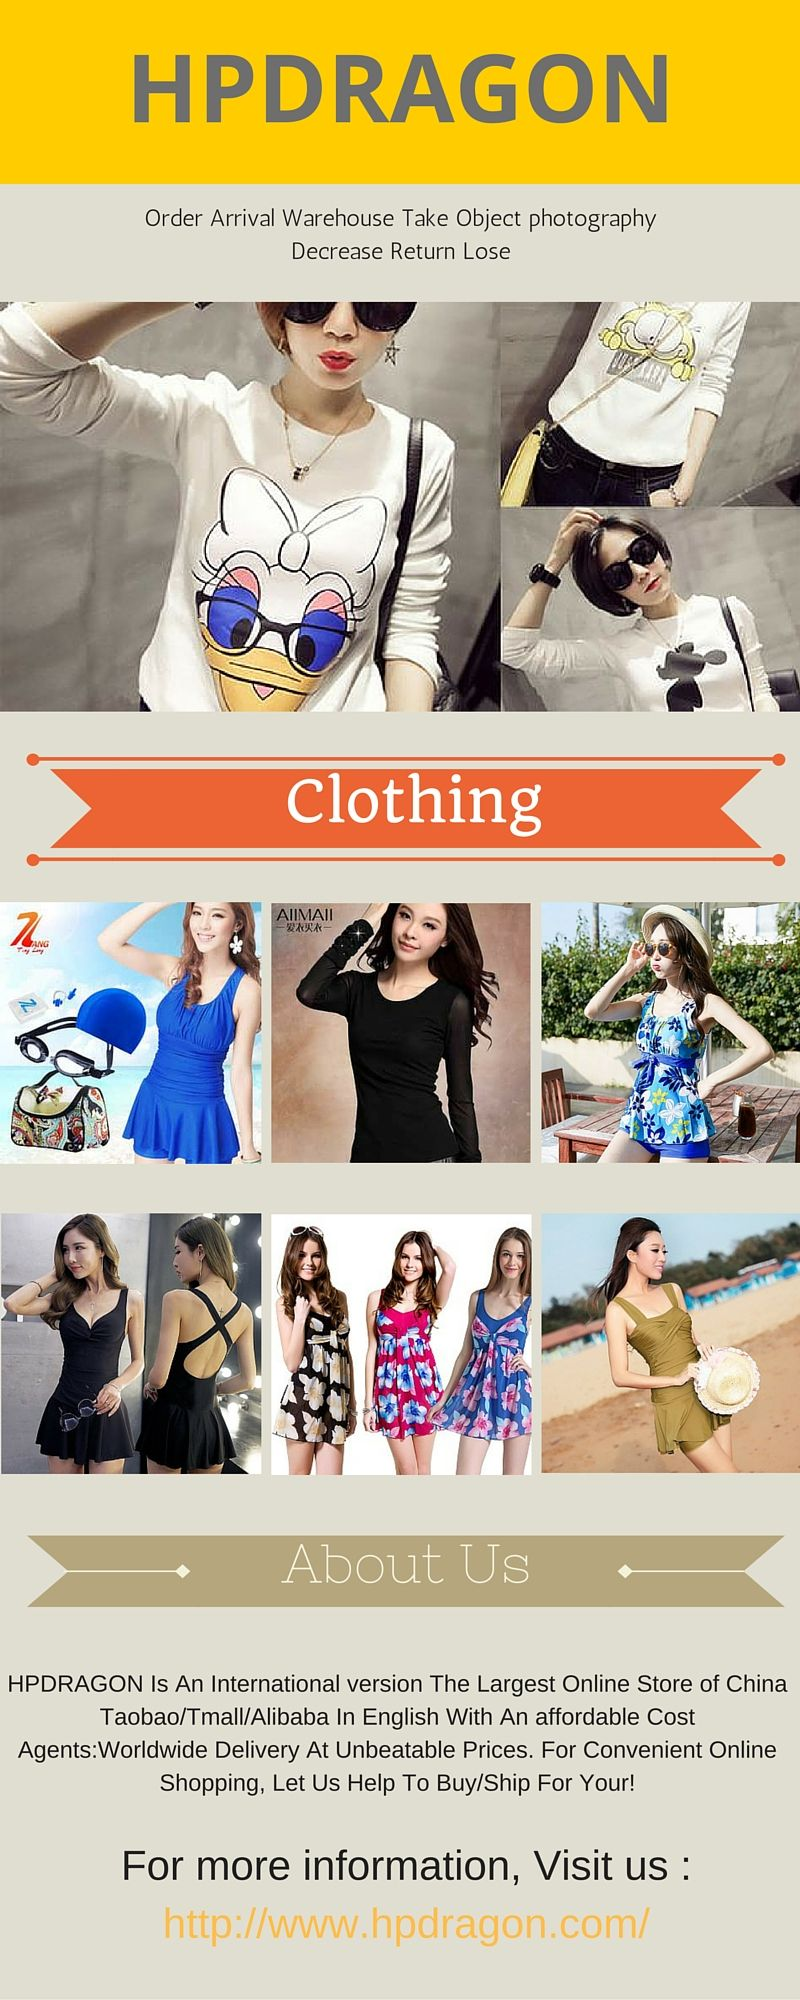 Pin by colinkot on 1688 com wholesale | Stuff to buy, Store